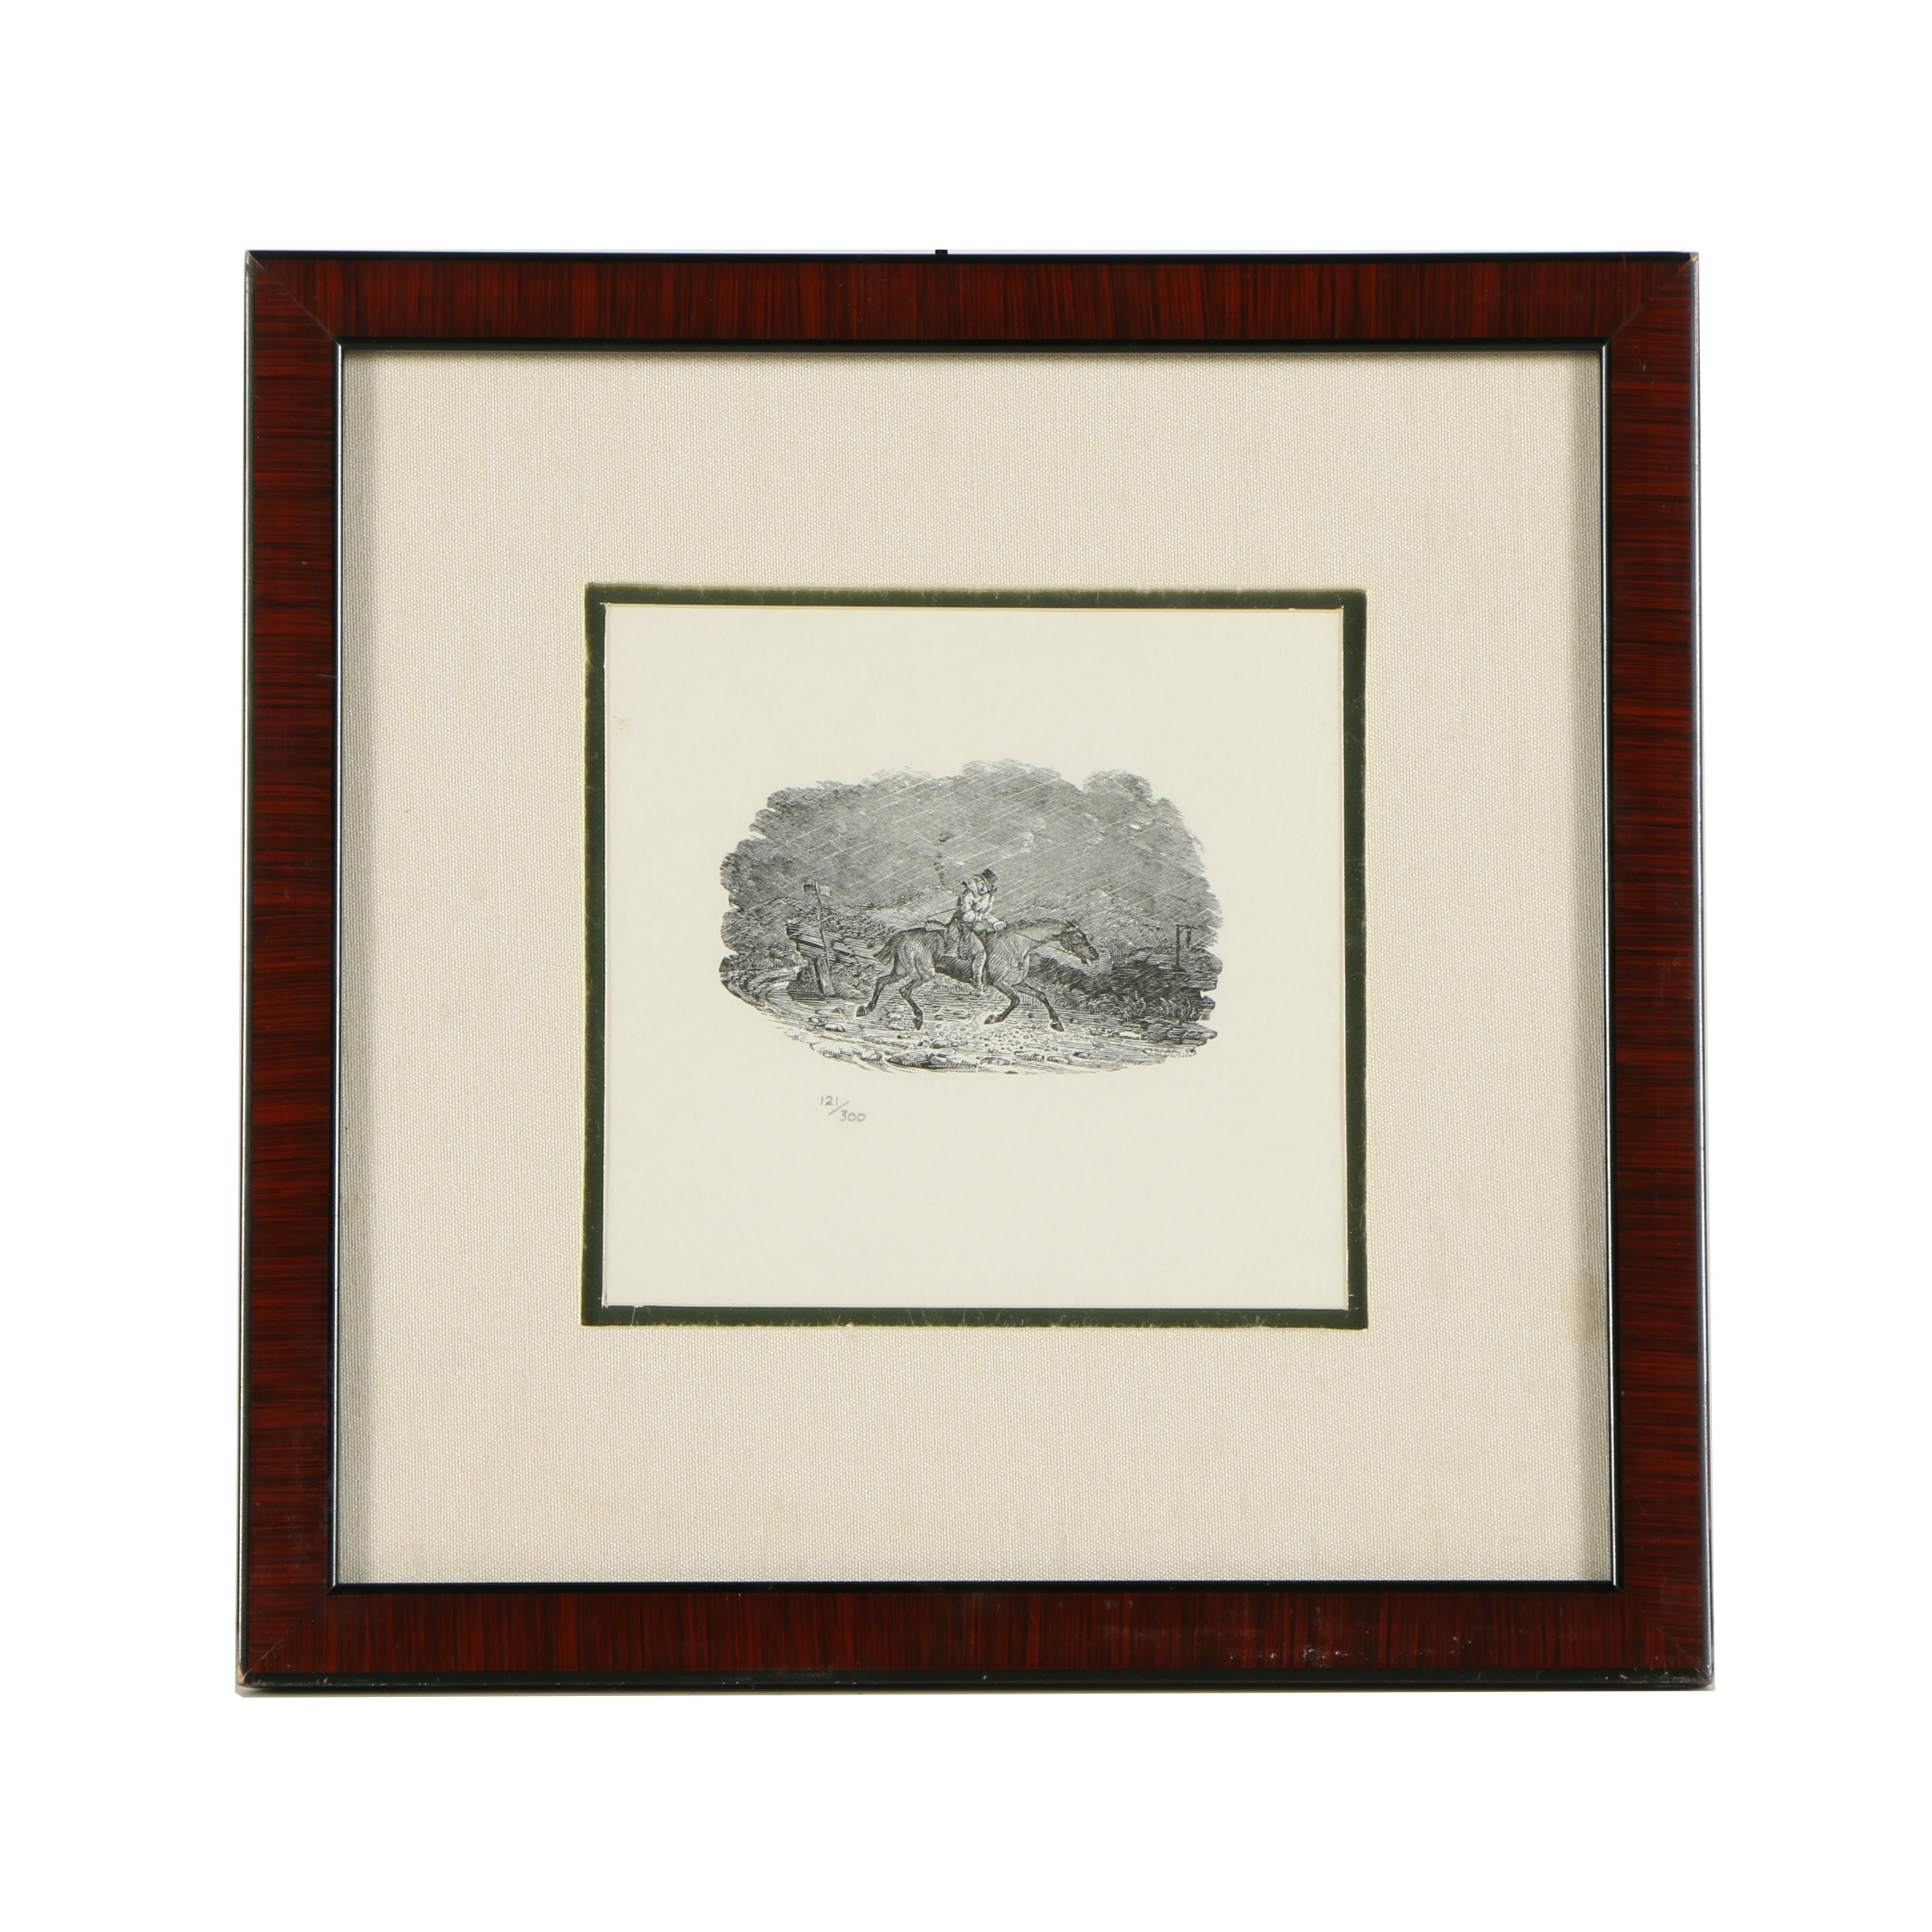 Limited Edition Lithograph Print on Paper after Thomas Bewick